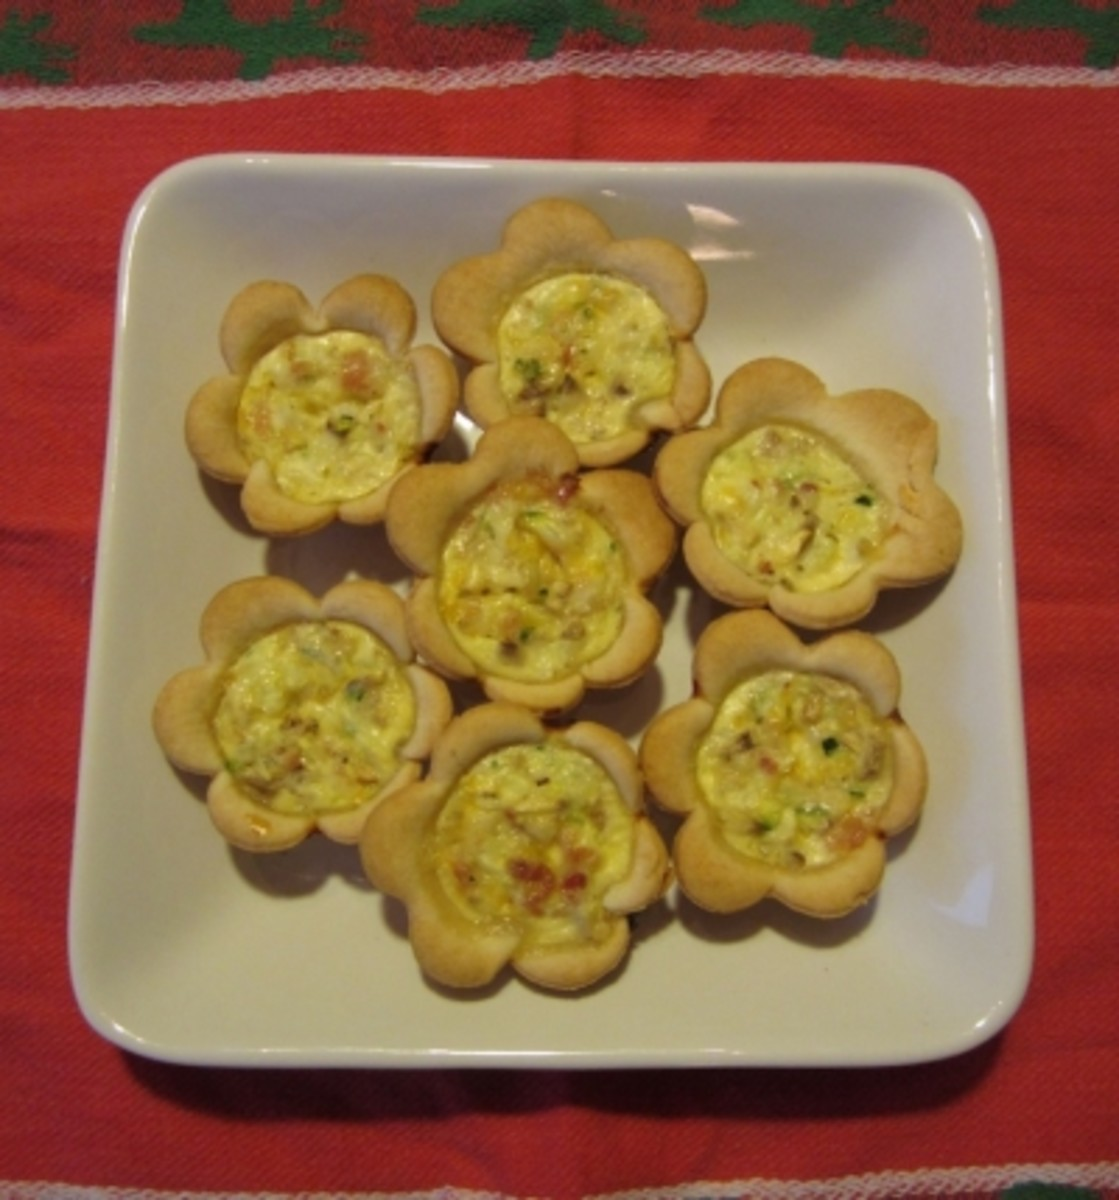 Everyone will love you when you bring these beautiful, delicious Mini Quiche to your next gathering!